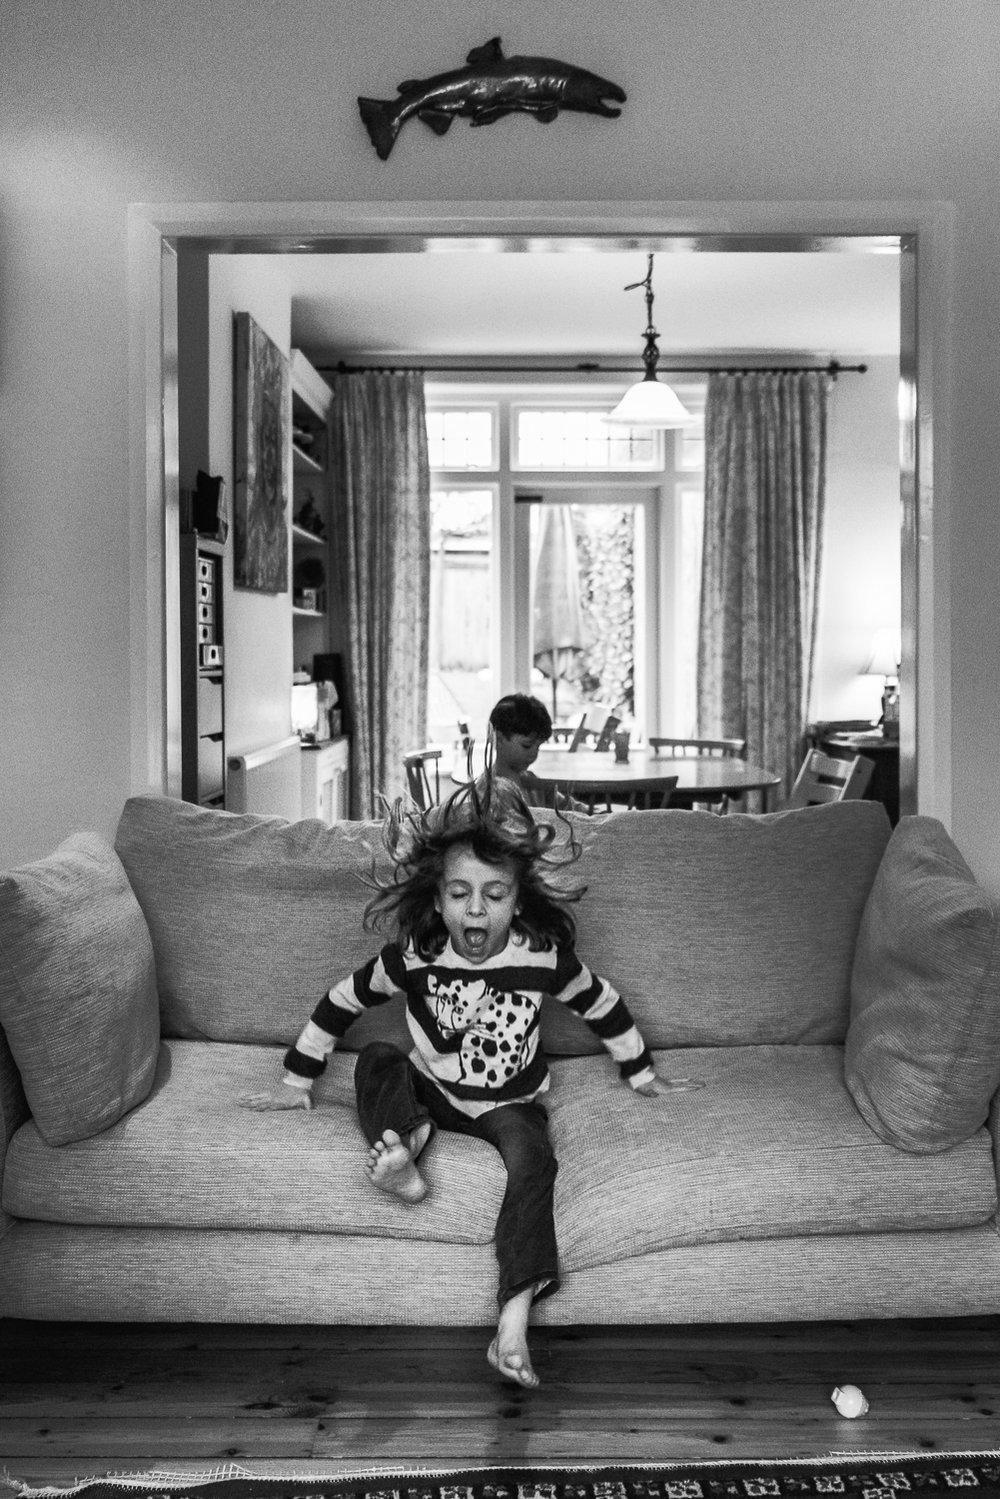 Copy of Black and white photograph of girl landing on the sofa